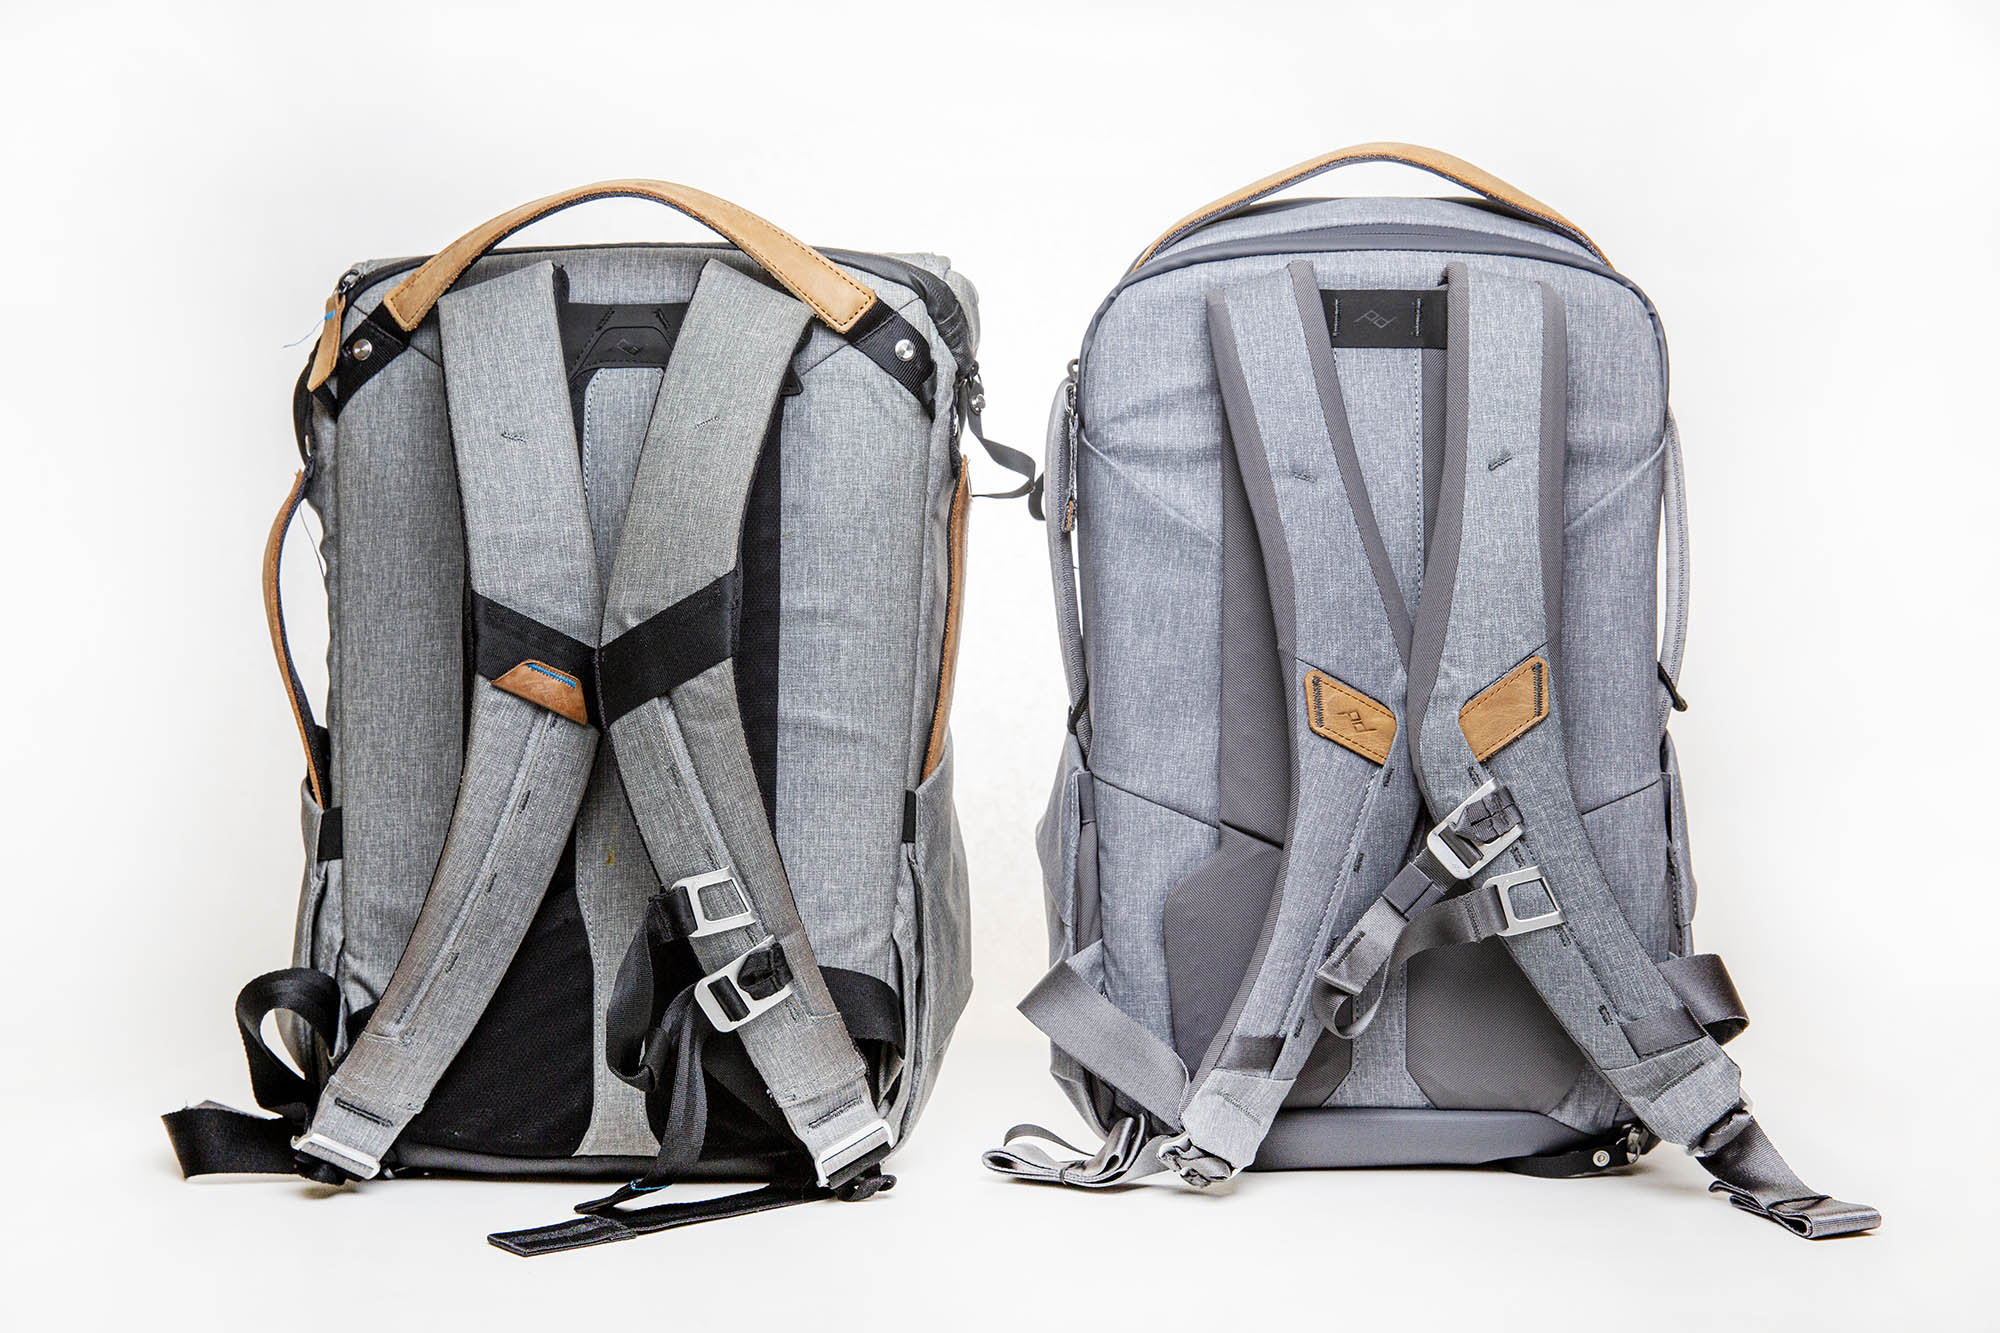 peak design everyday backpack zip review - comparison of V1 and V2